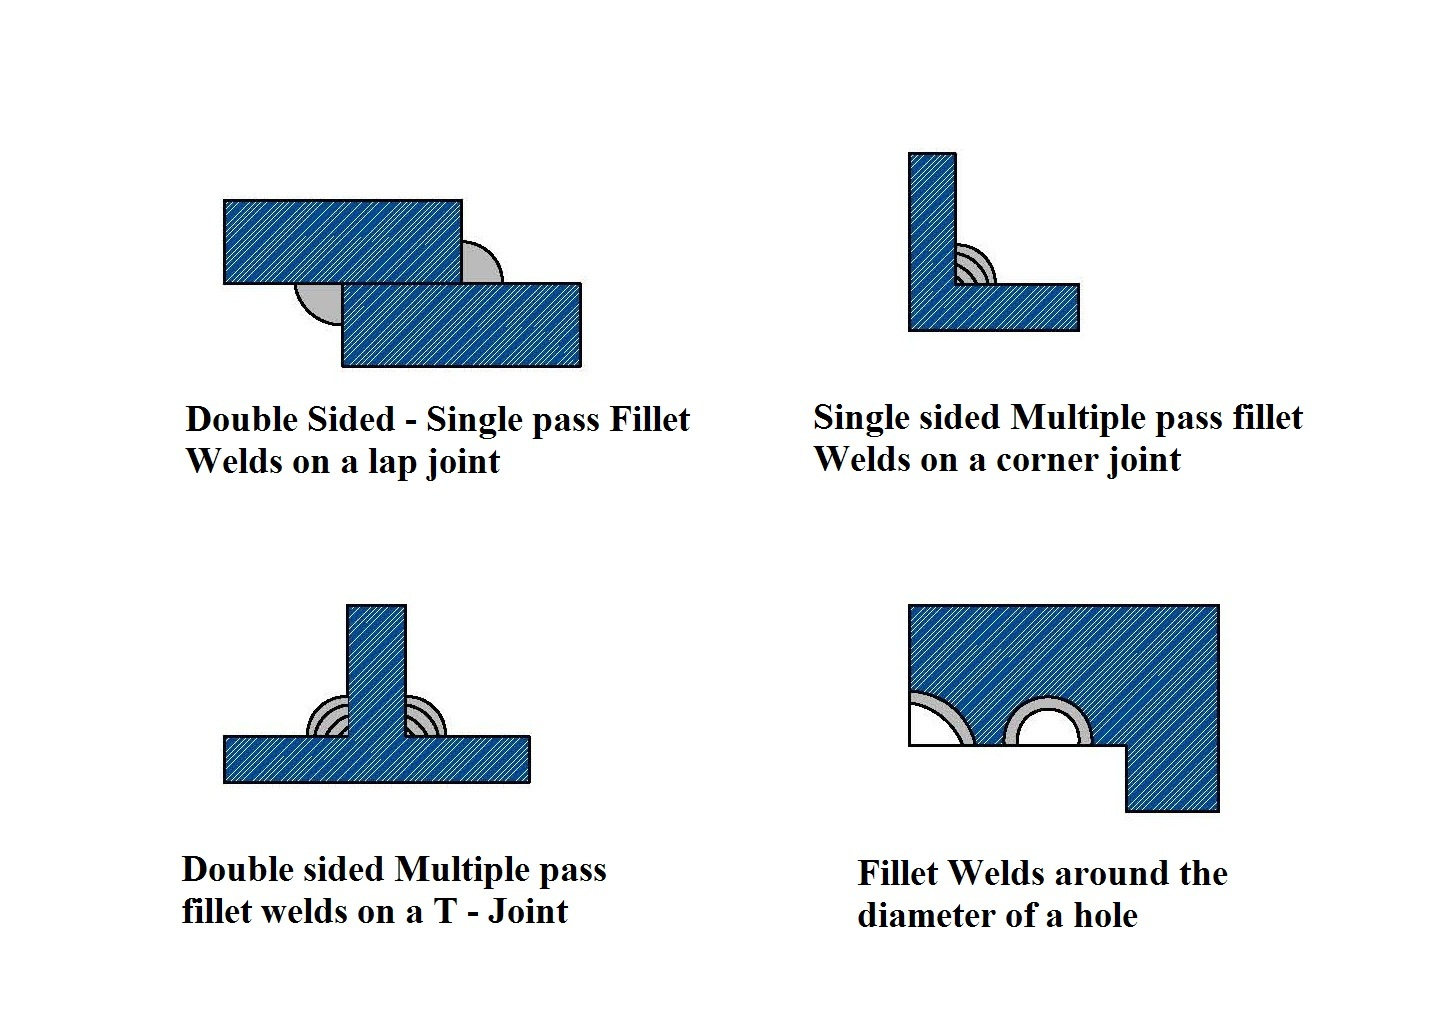 Welding Hardfacing Cladding And Cutting Of Metals 2016 05 15 Diagram Process Different Types Welds In